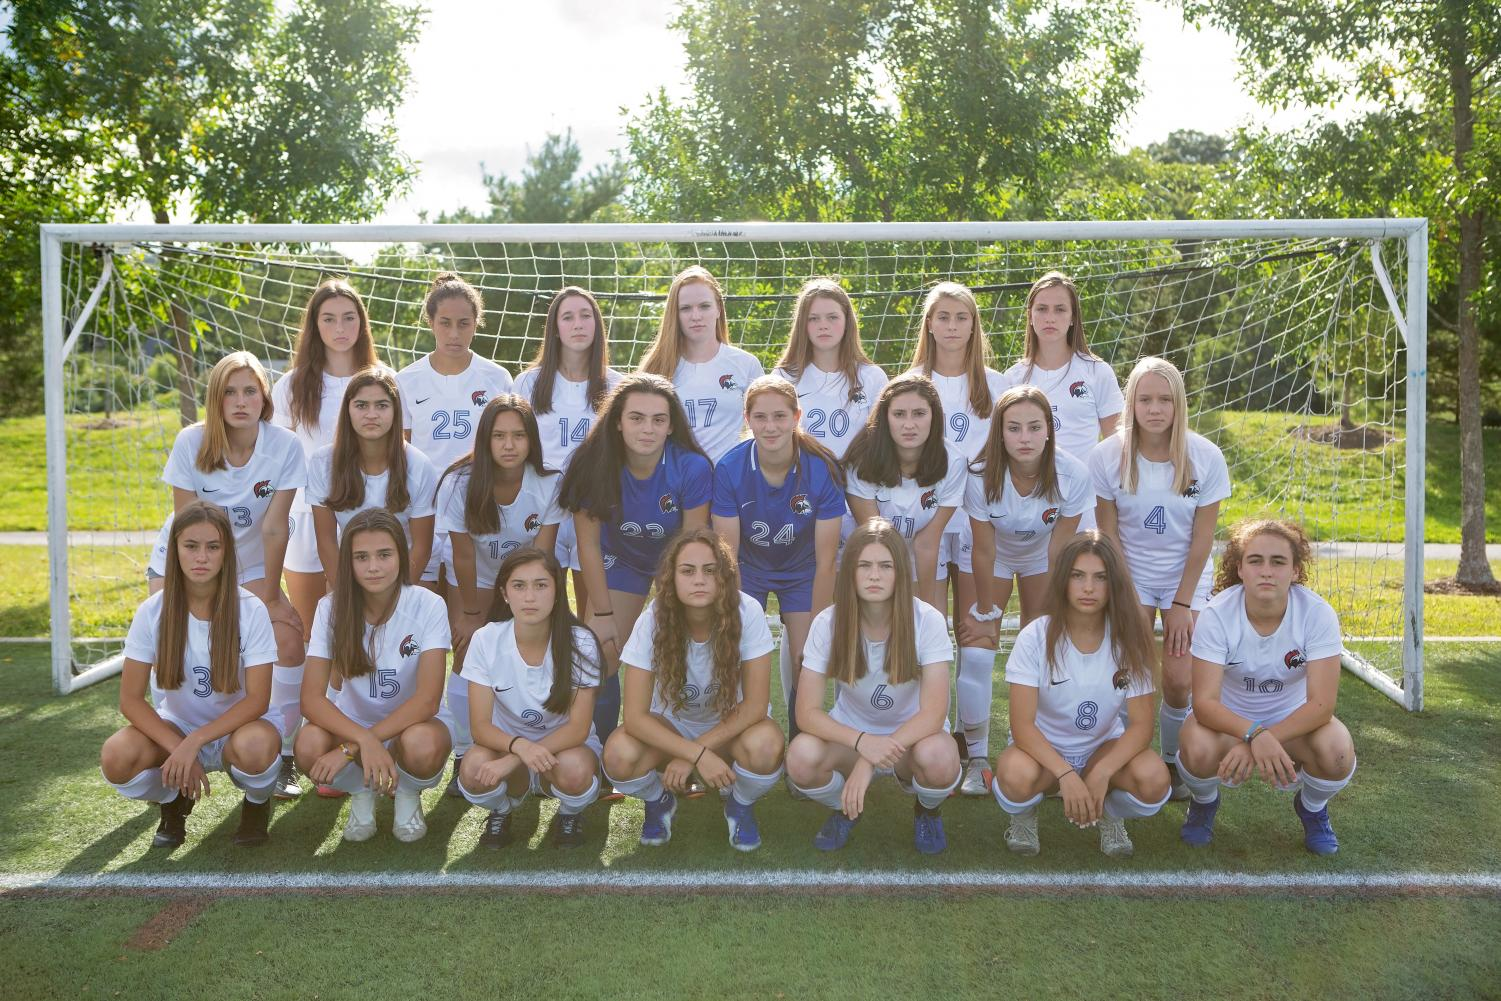 The Boston Globe has ranked the girls varsity soccer team as number one in Massachusetts. The team has persevered through injuries to find success.